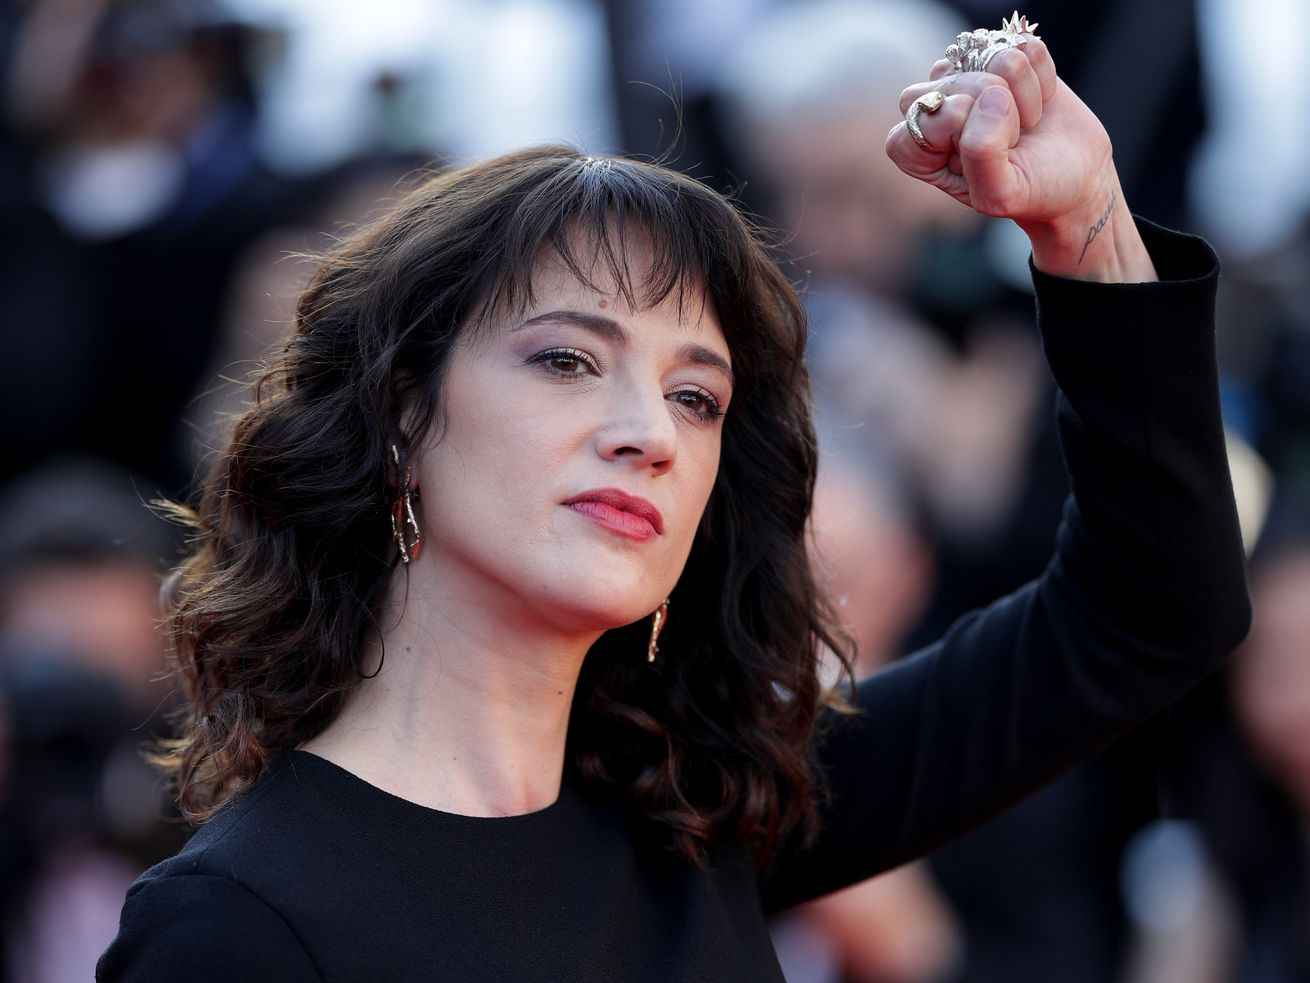 Asia Argento, who has been accused of sexual assault by actor Jimmy Bennett, pictured at the Cannes Film Festival in May 2018.